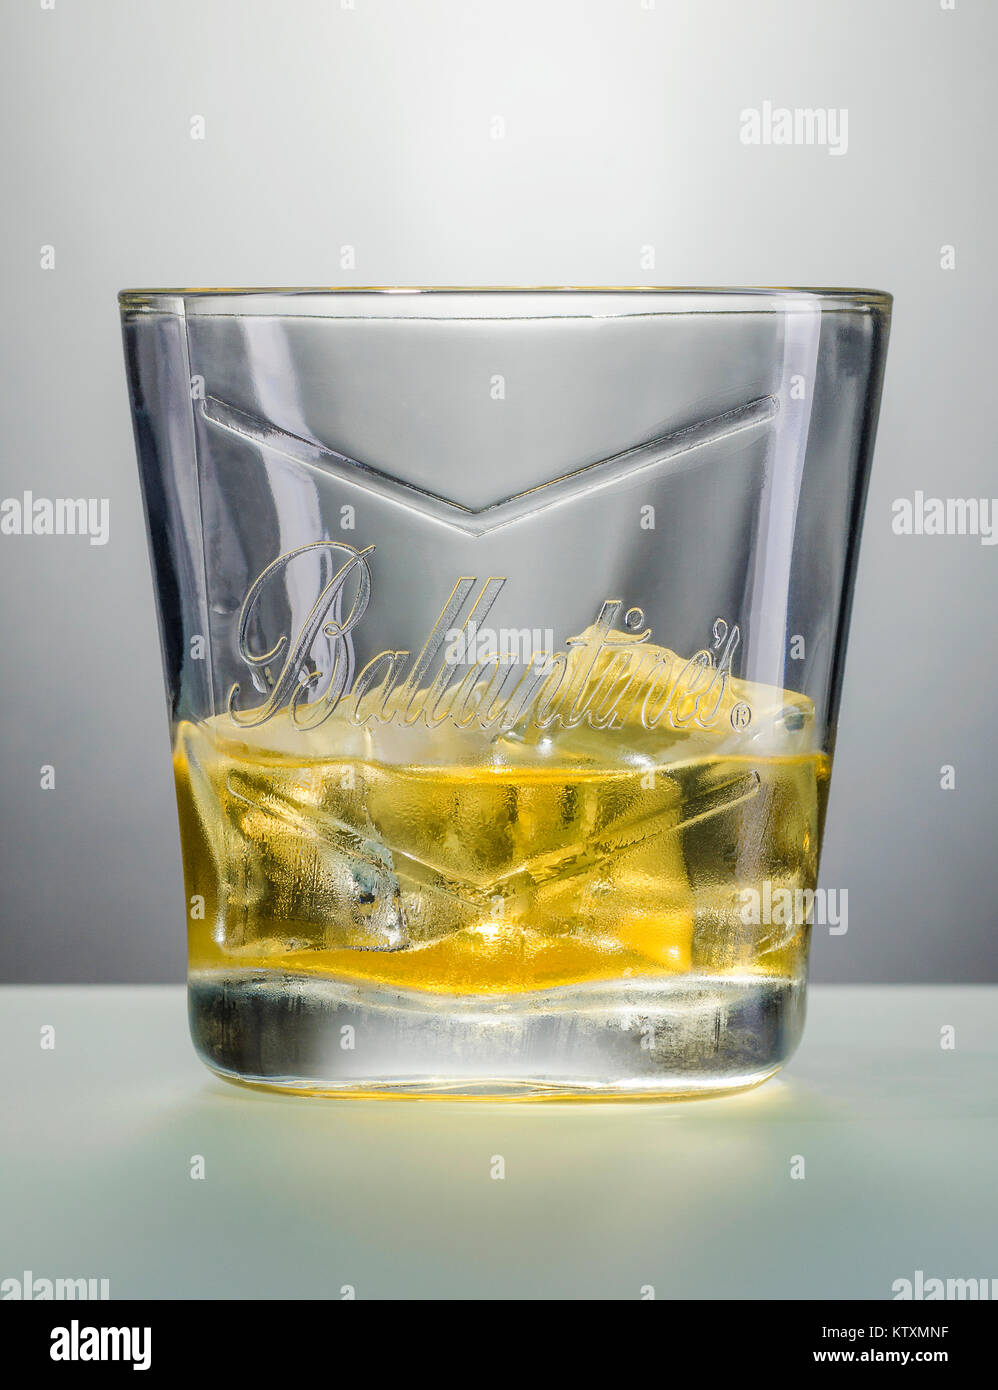 Verre De Whisky Ballantines Whisky Photos Ballantines Whisky Images Page 2 Alamy